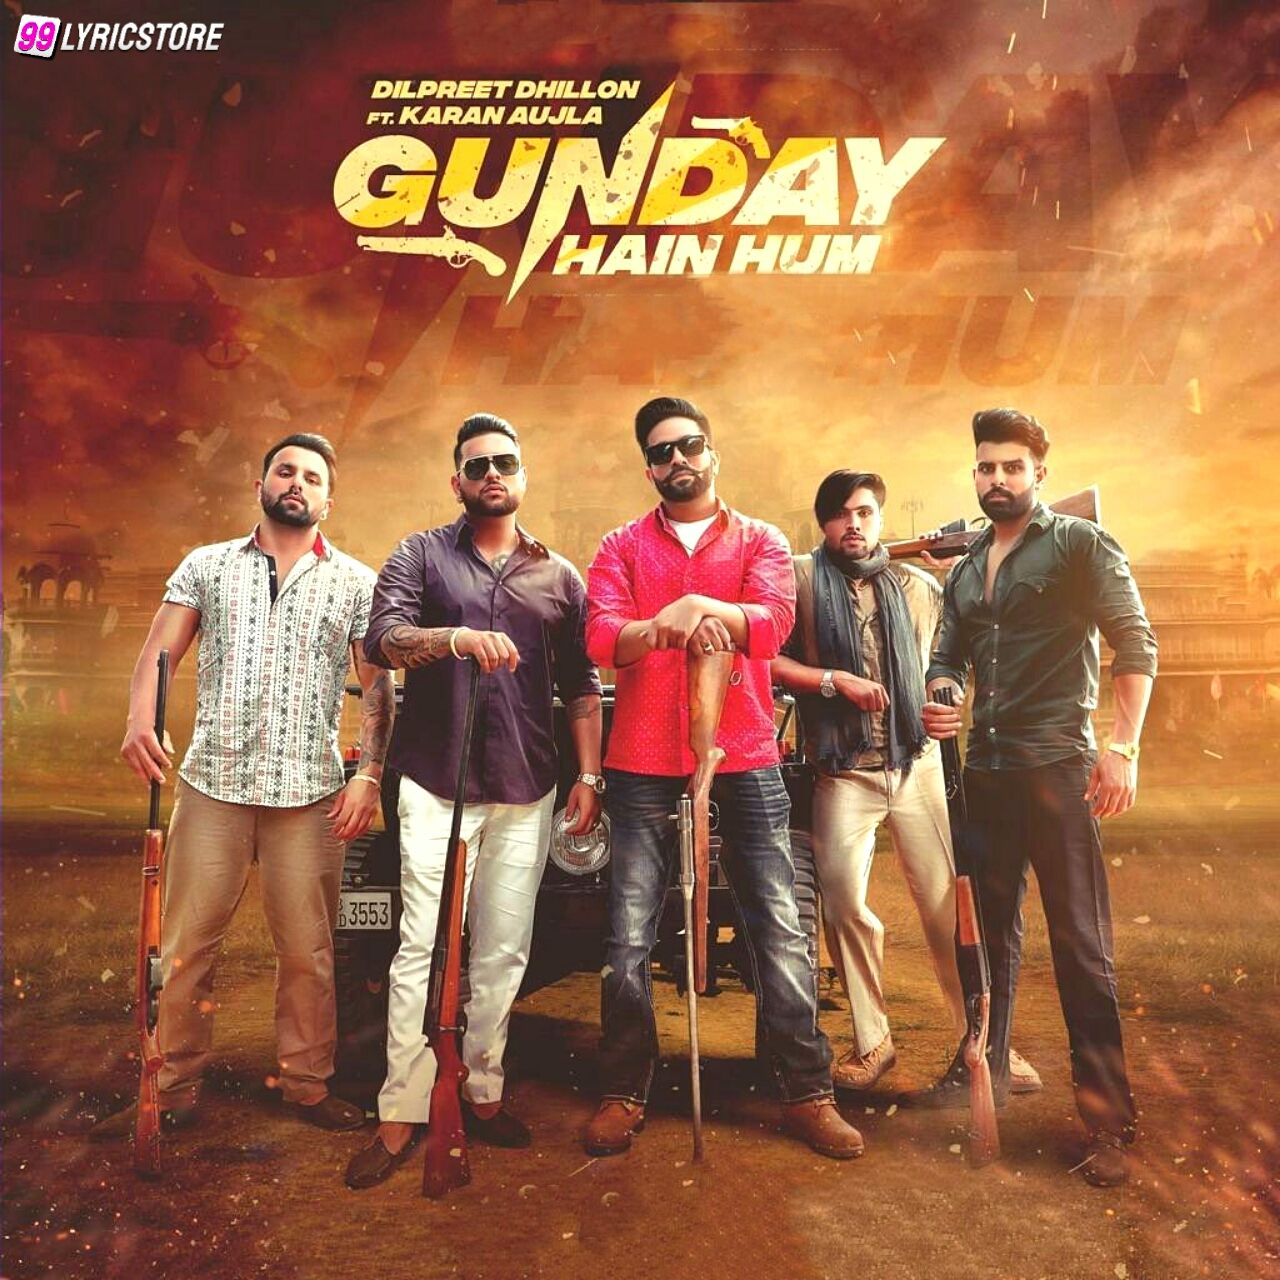 Gunday Hain Hum Punjabi Song Lyrics sung by Dilpreet Dhillon Ft Karan Aujla